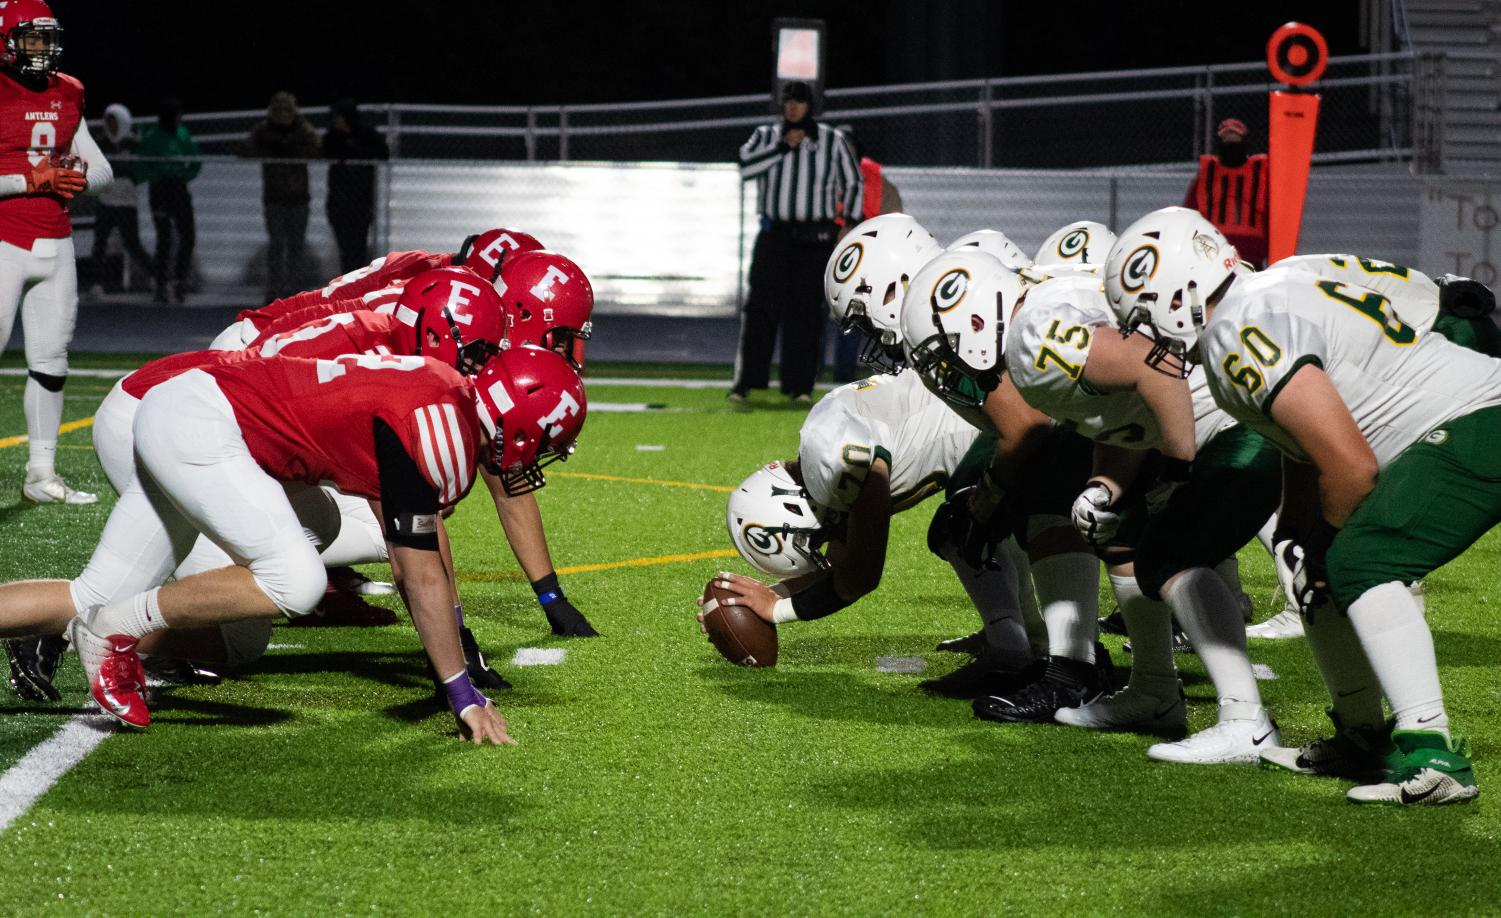 The Antler defensive line prepares to take off against the Gretna offense during the first quarter. The Dragons offensive line allowed their backs to run for over 200 yards. Running back Trevor Marshall was the leading rusher for over 224 yards.